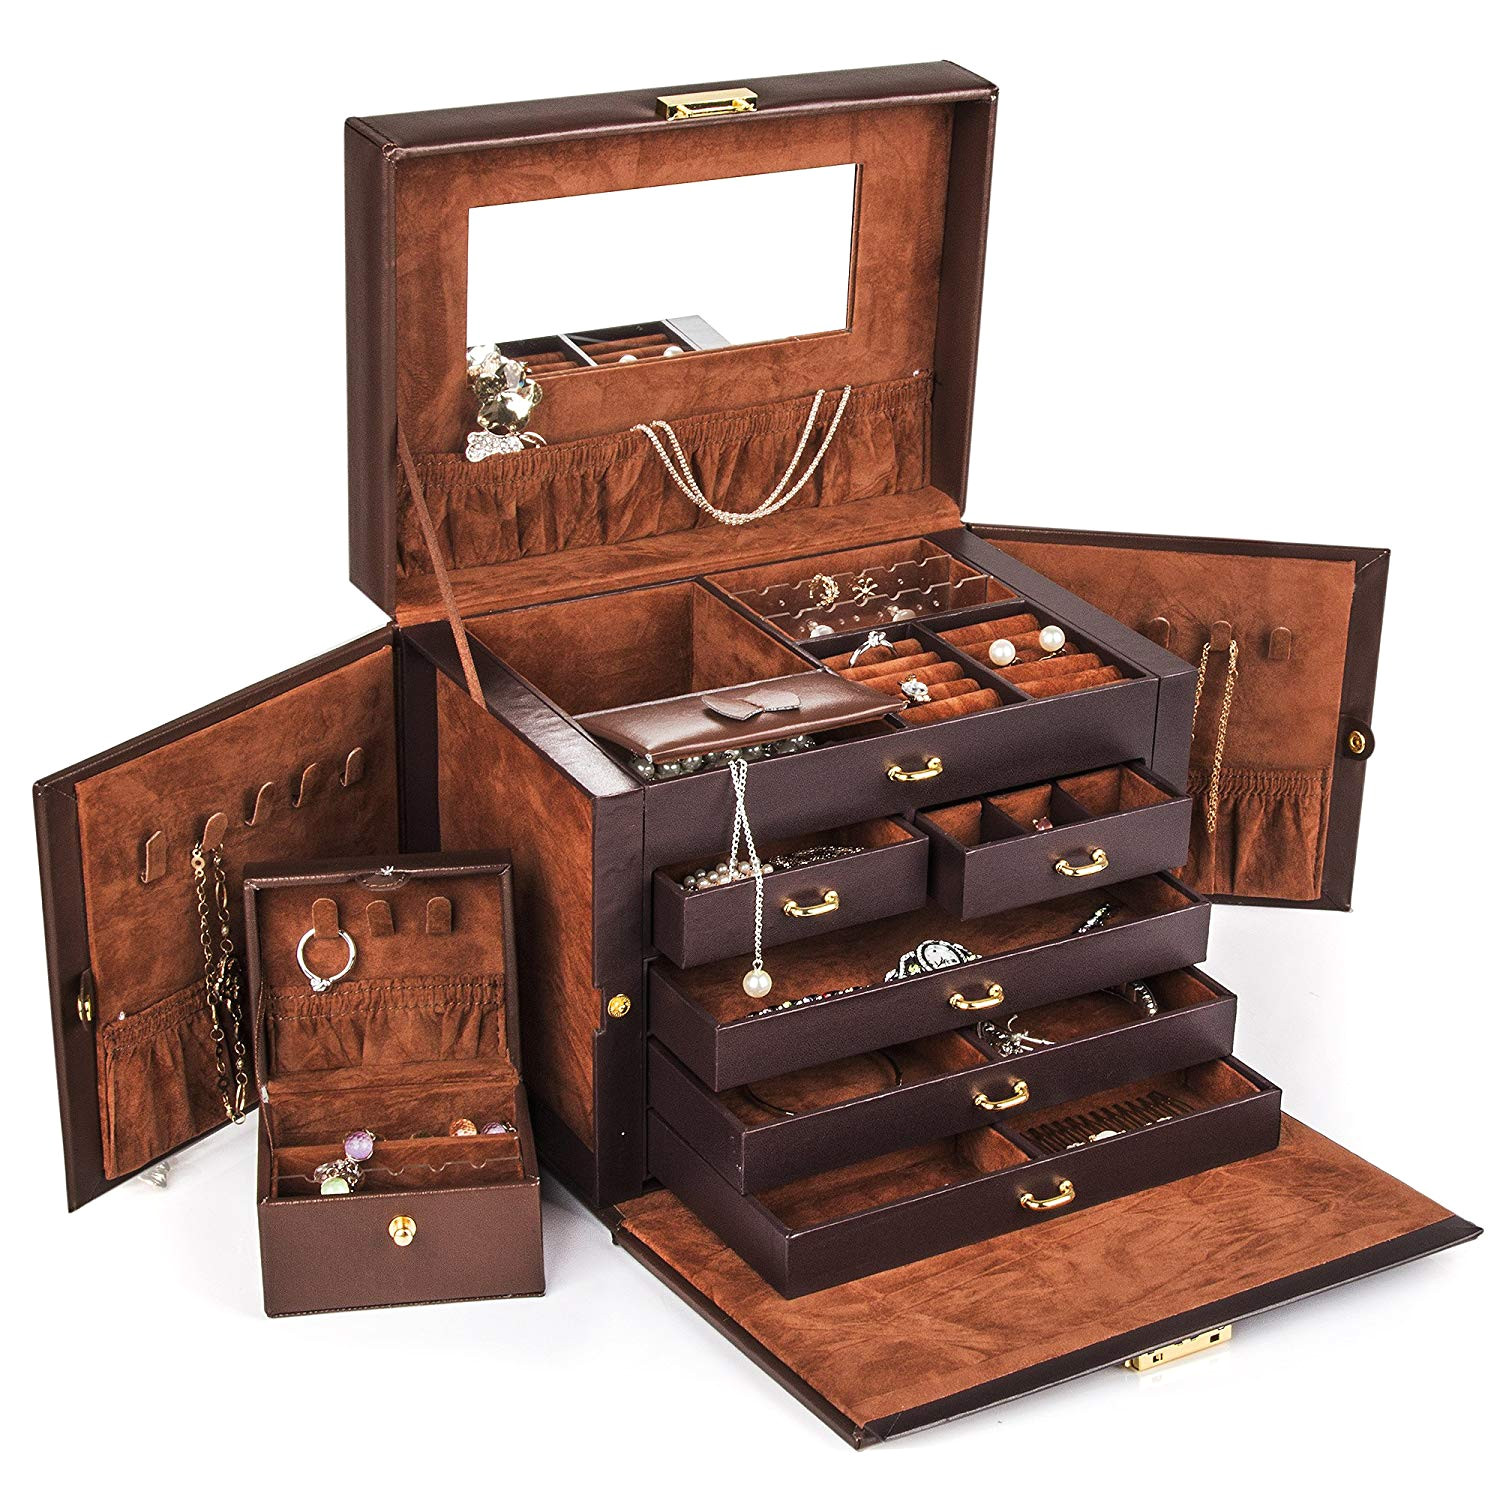 amazon com kendal brown leather jewelry box case storage organizer with travel case and lock home kitchen